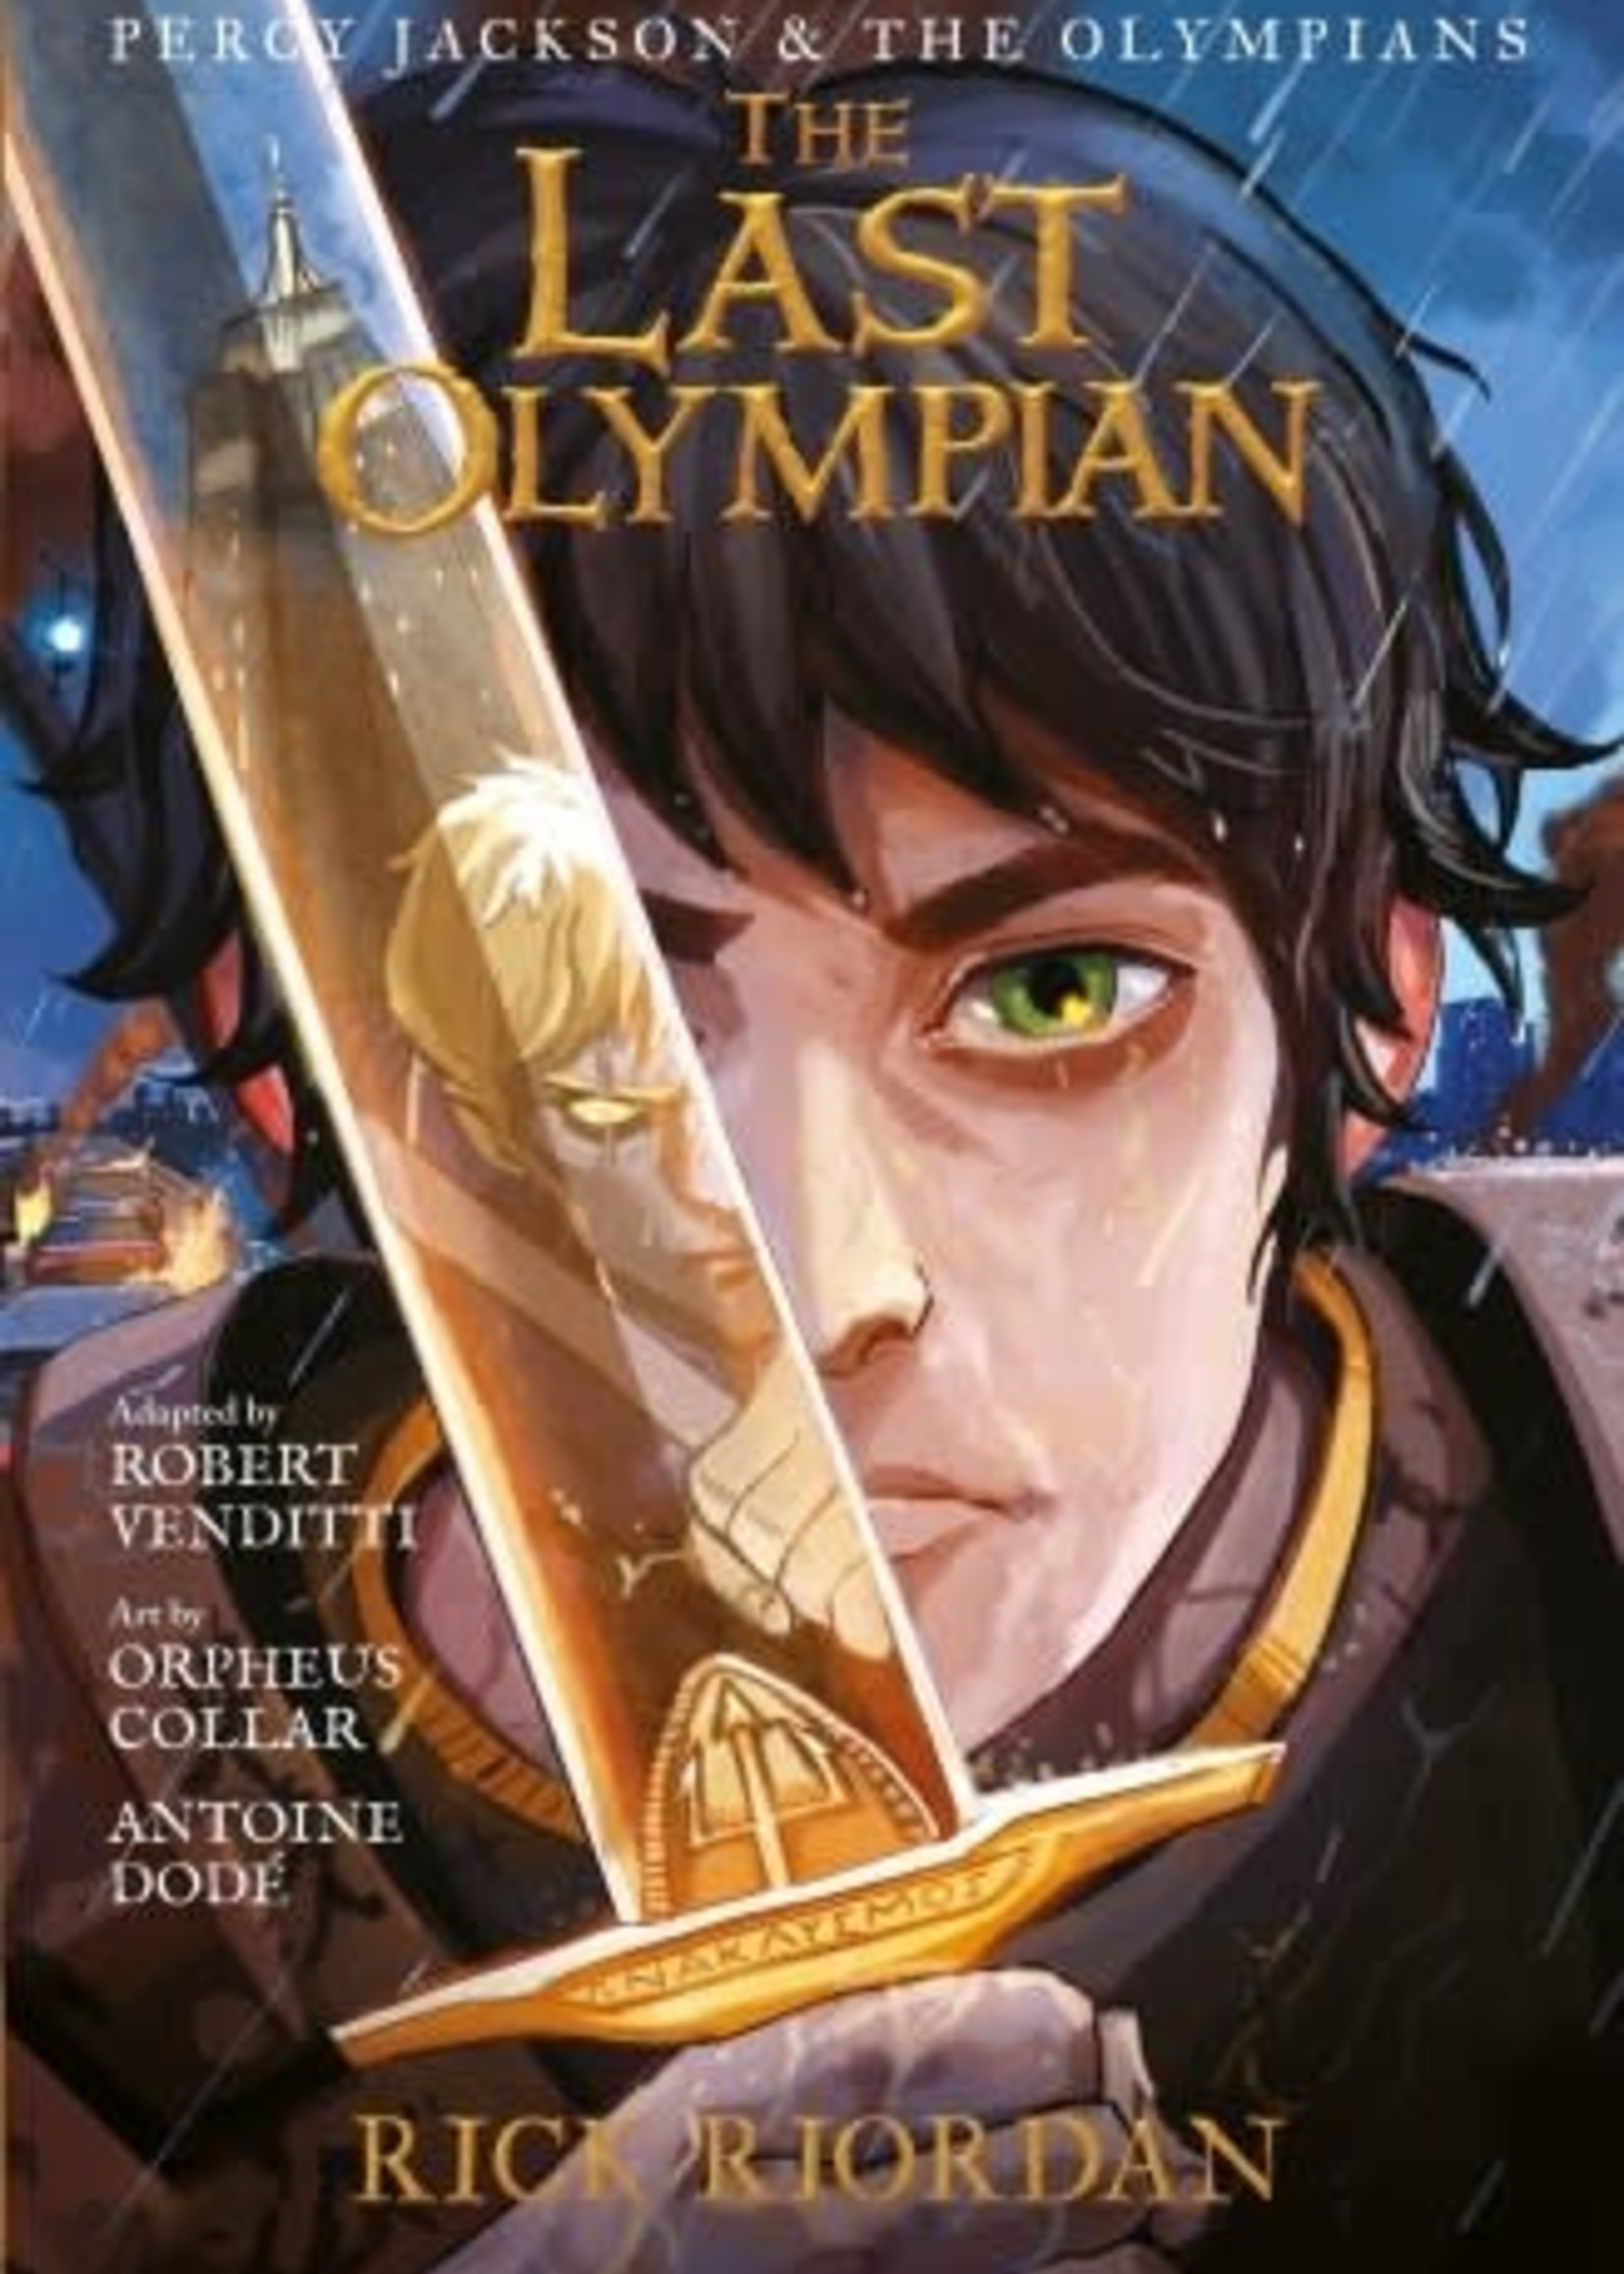 Percy Jackson and the Olympians #05, The Last Olympian Graphic Novel - Paperback